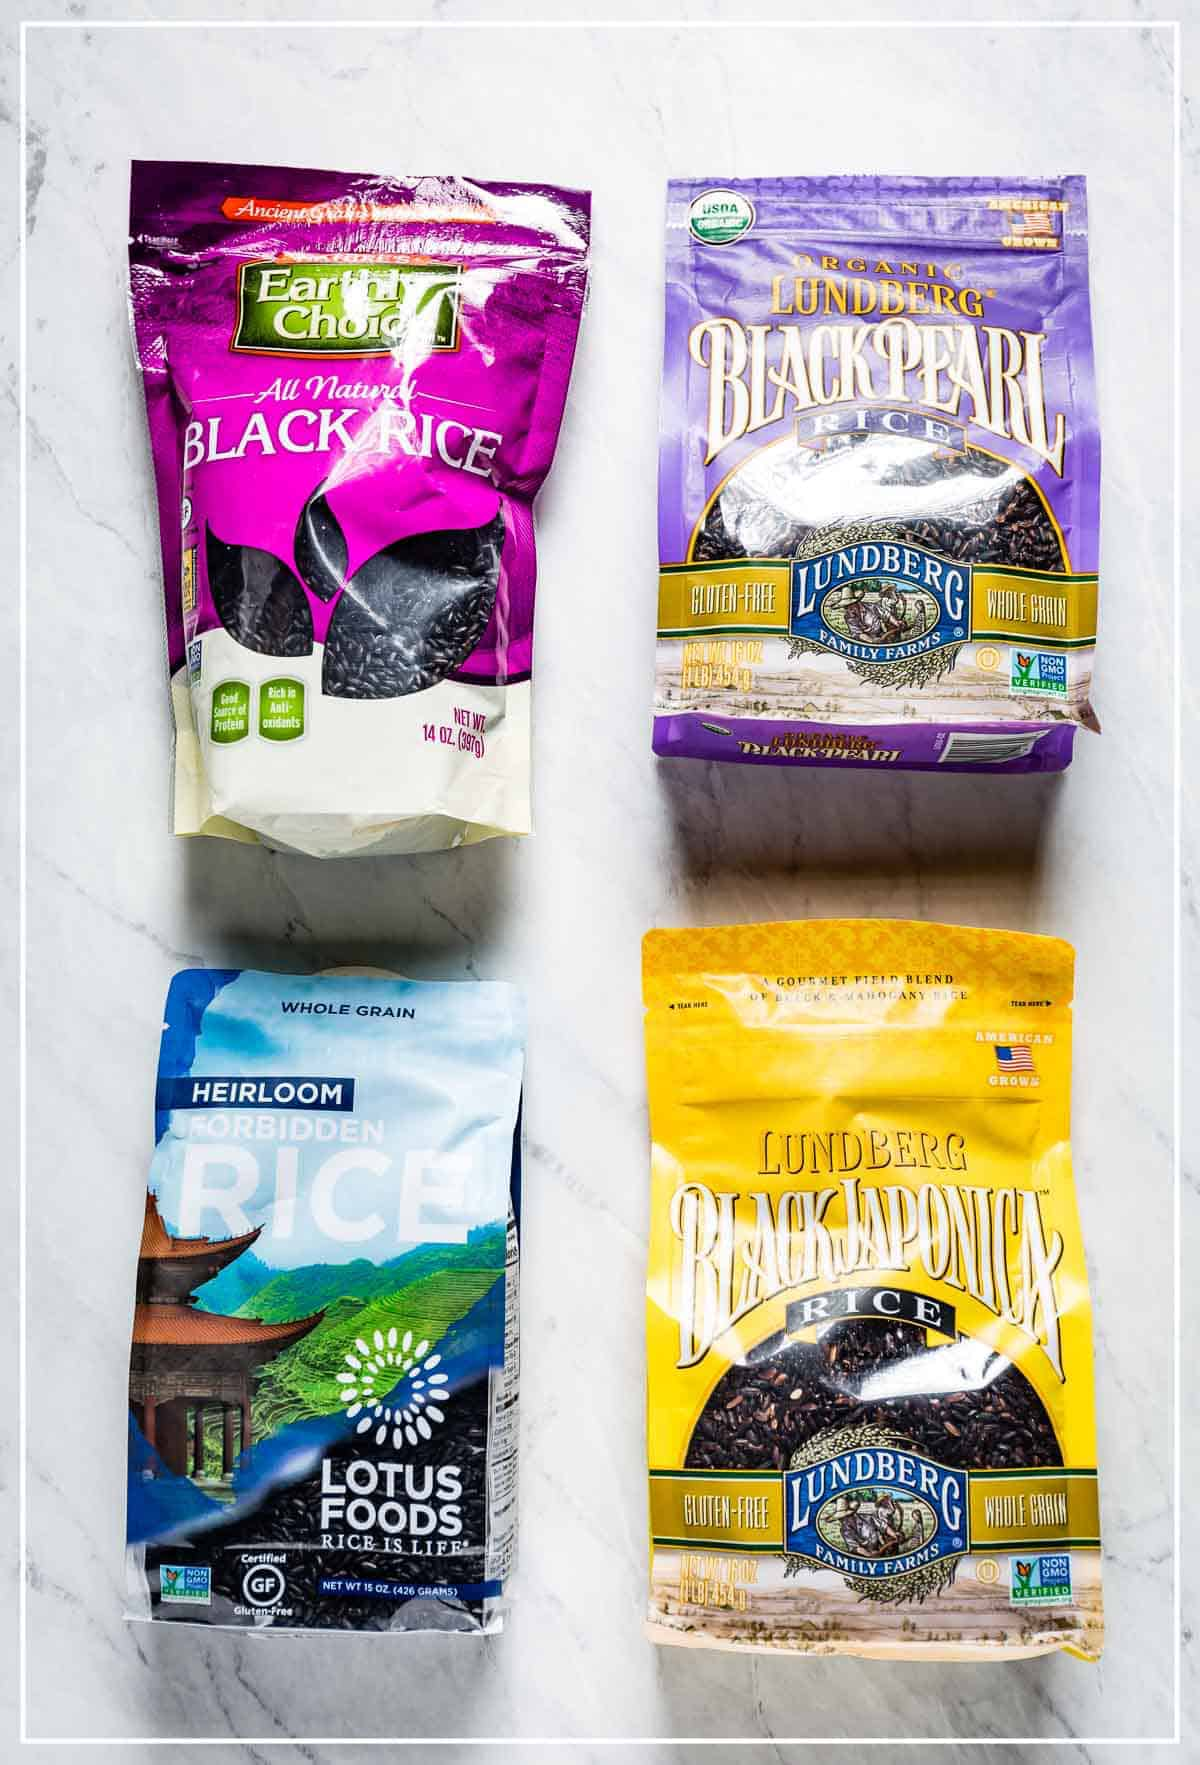 Popular black rice brands sold in the US in their packaging